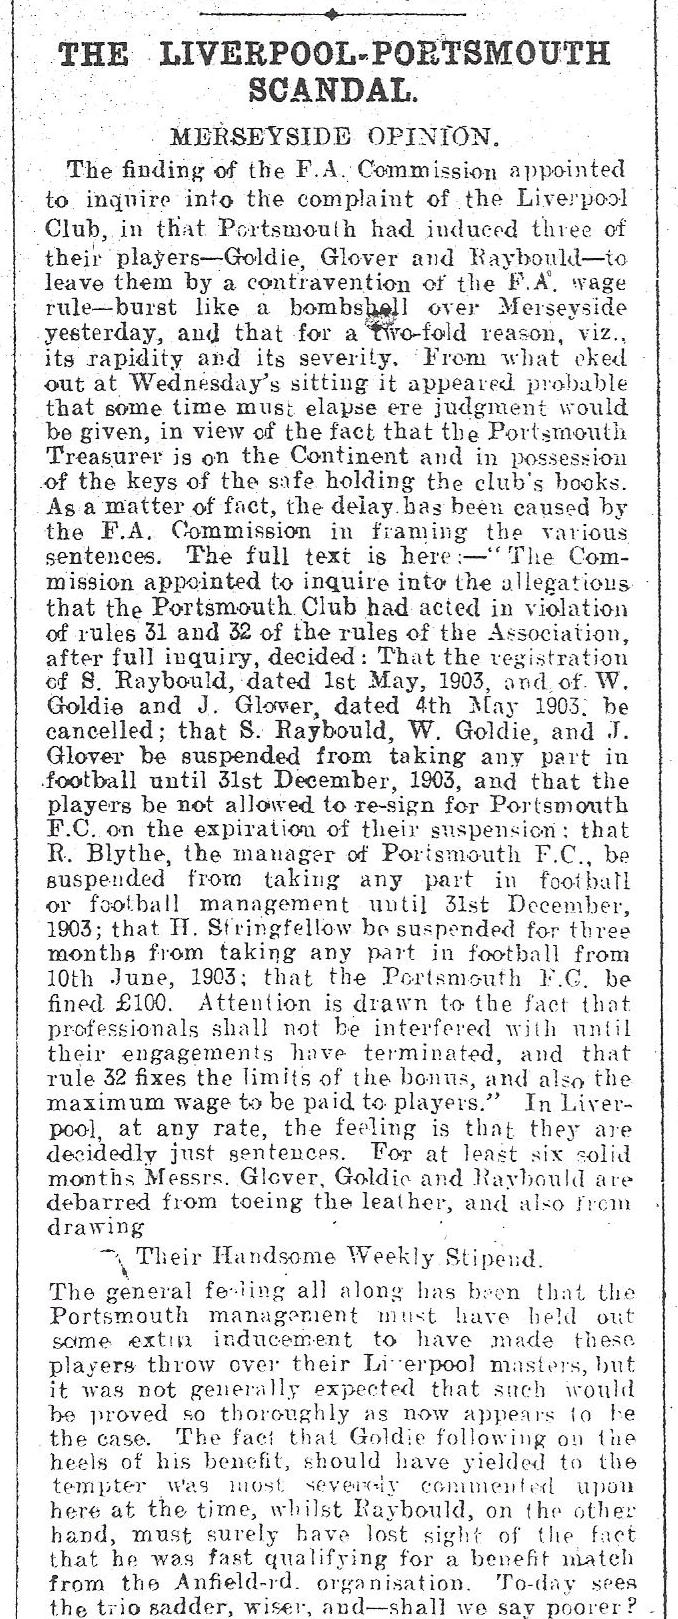 The Pompey scandal - 13 June 1903